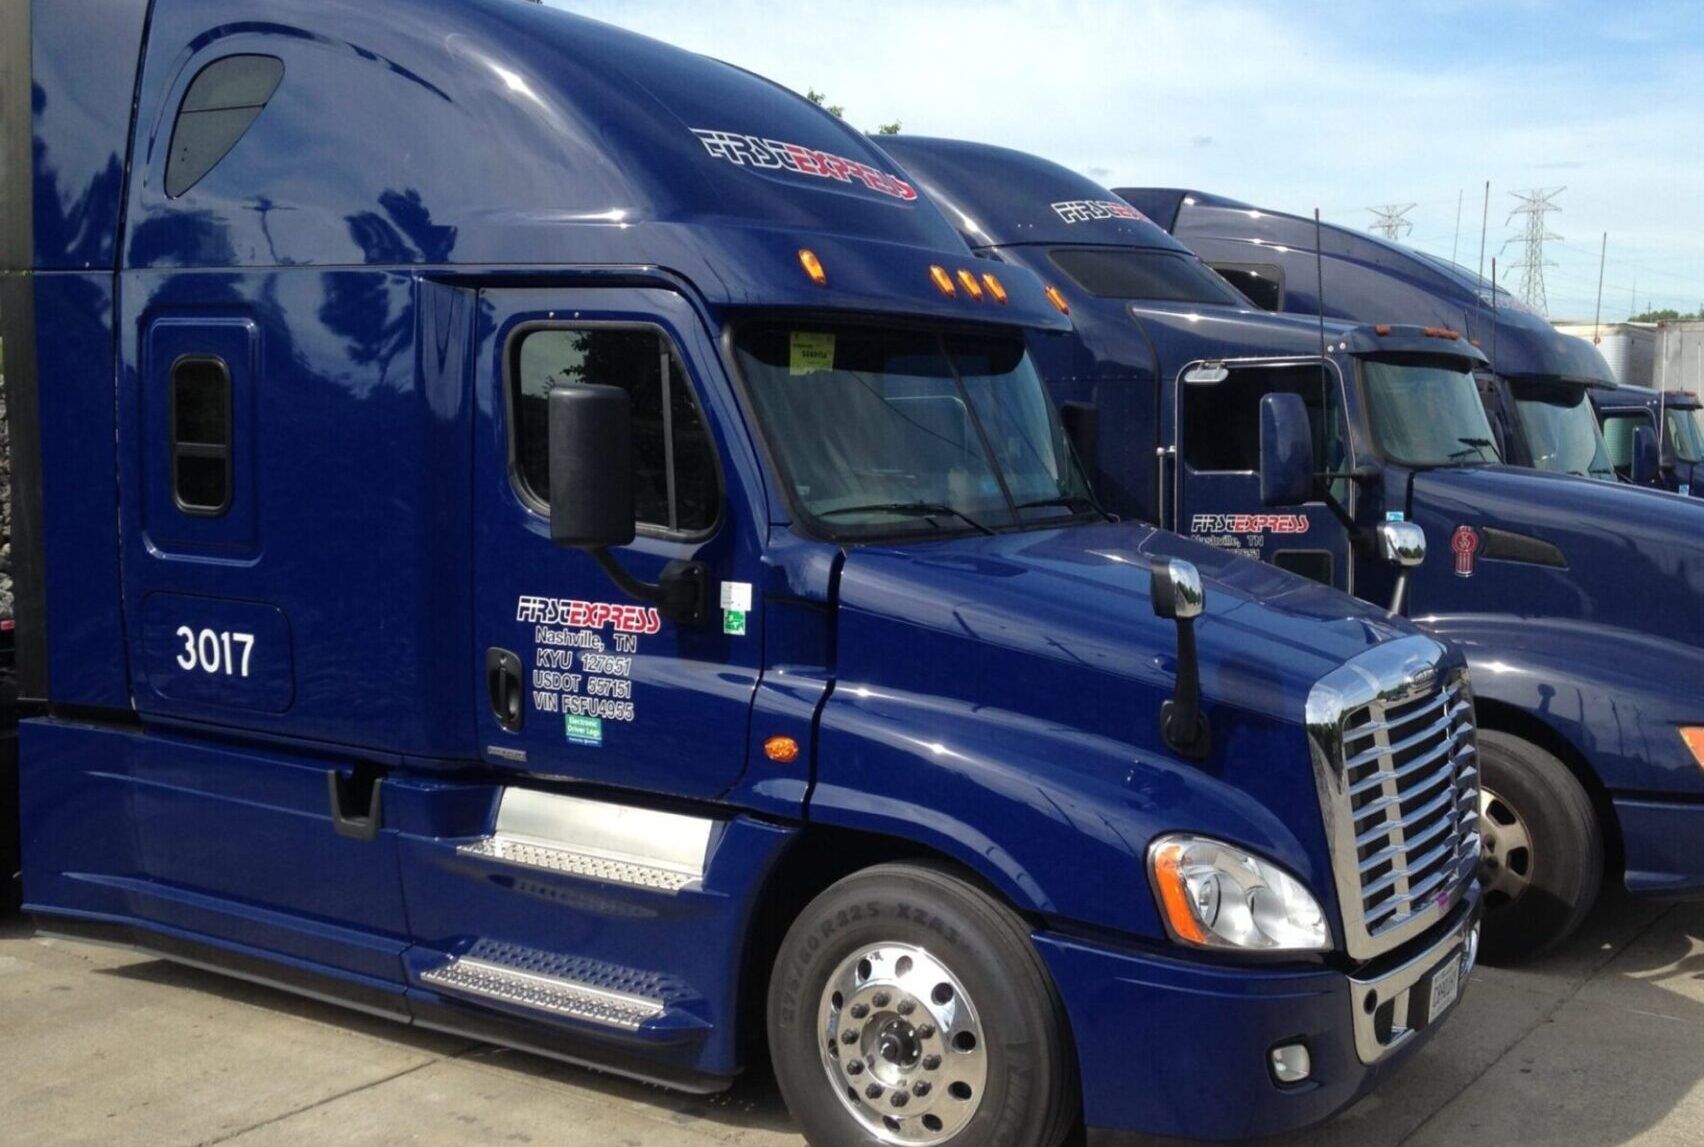 Line of Trucks with cabs of Nashville truckload carriers with truckload carrier tracking